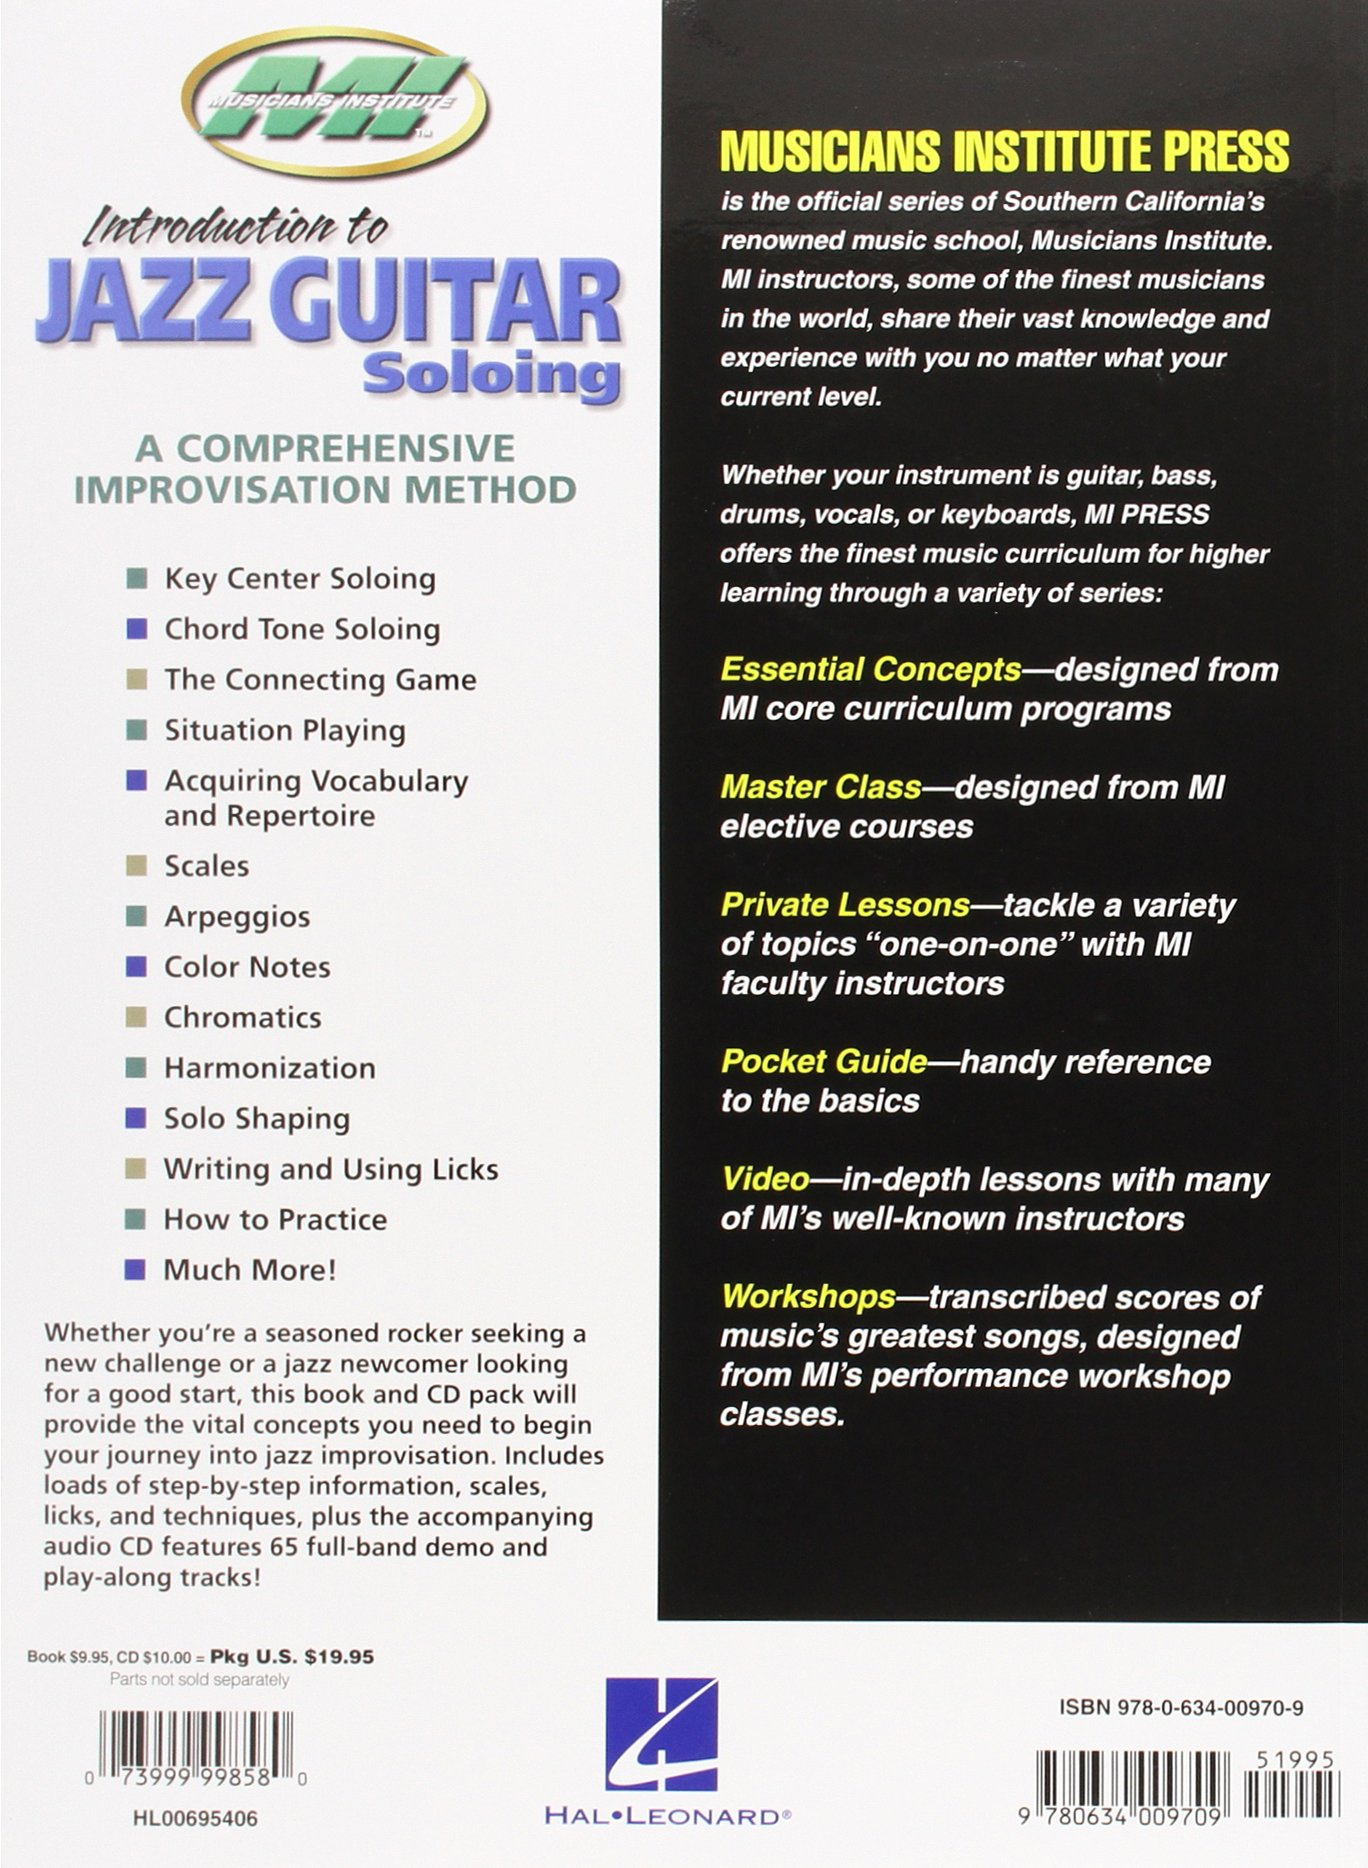 Introduction To Jazz Guitar Soloing - A Comprehensive ...